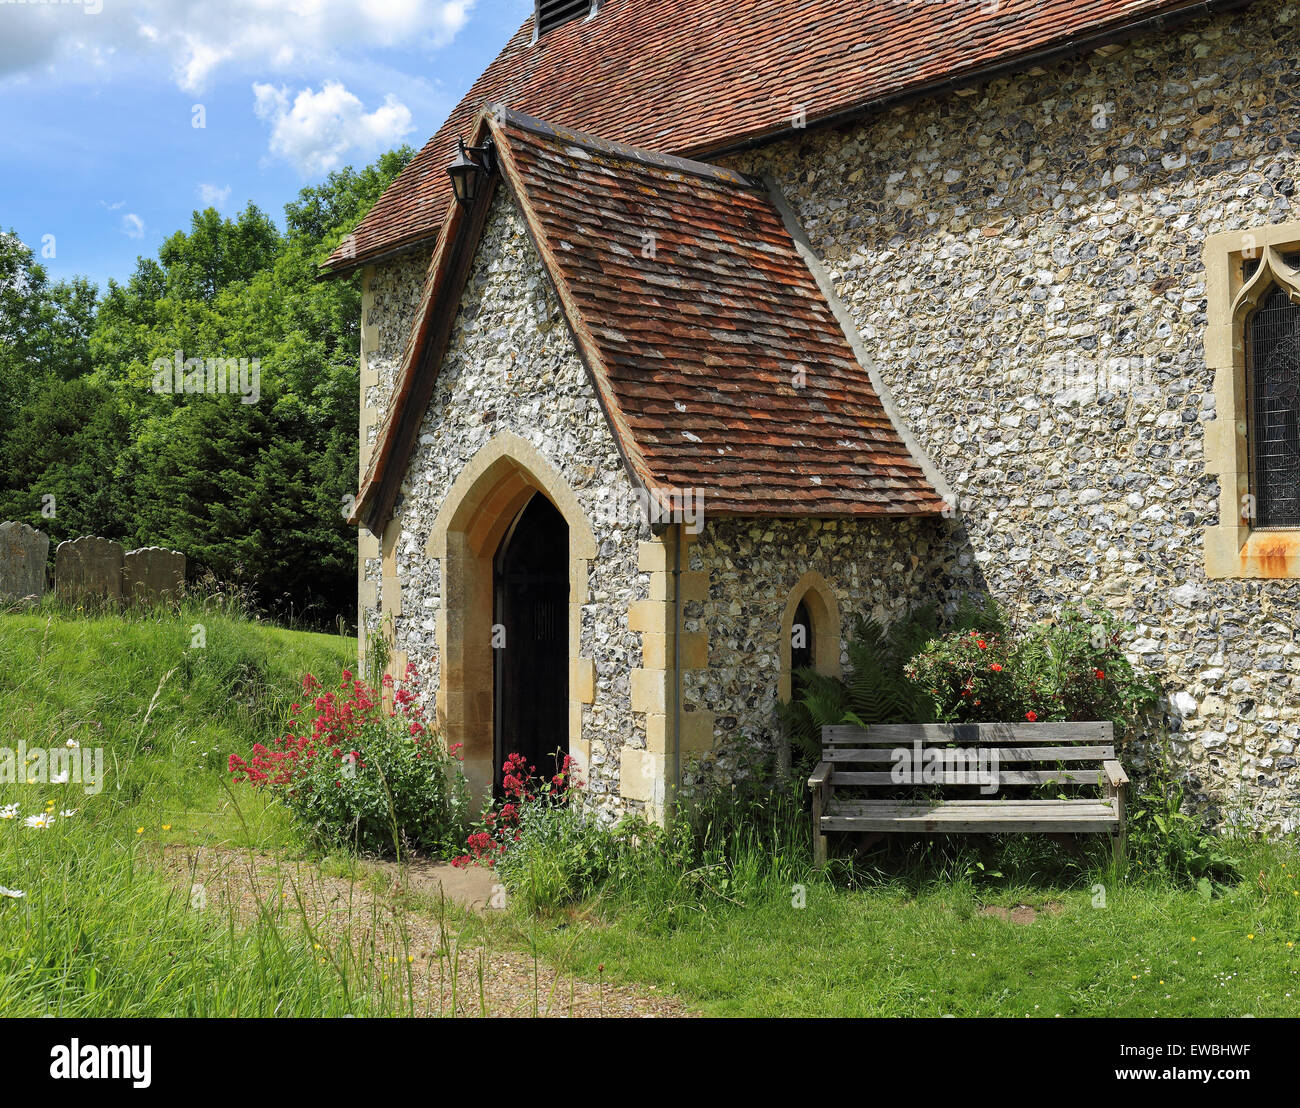 Medieval English Village Church with bench seat and flowers around the walls - Stock Image